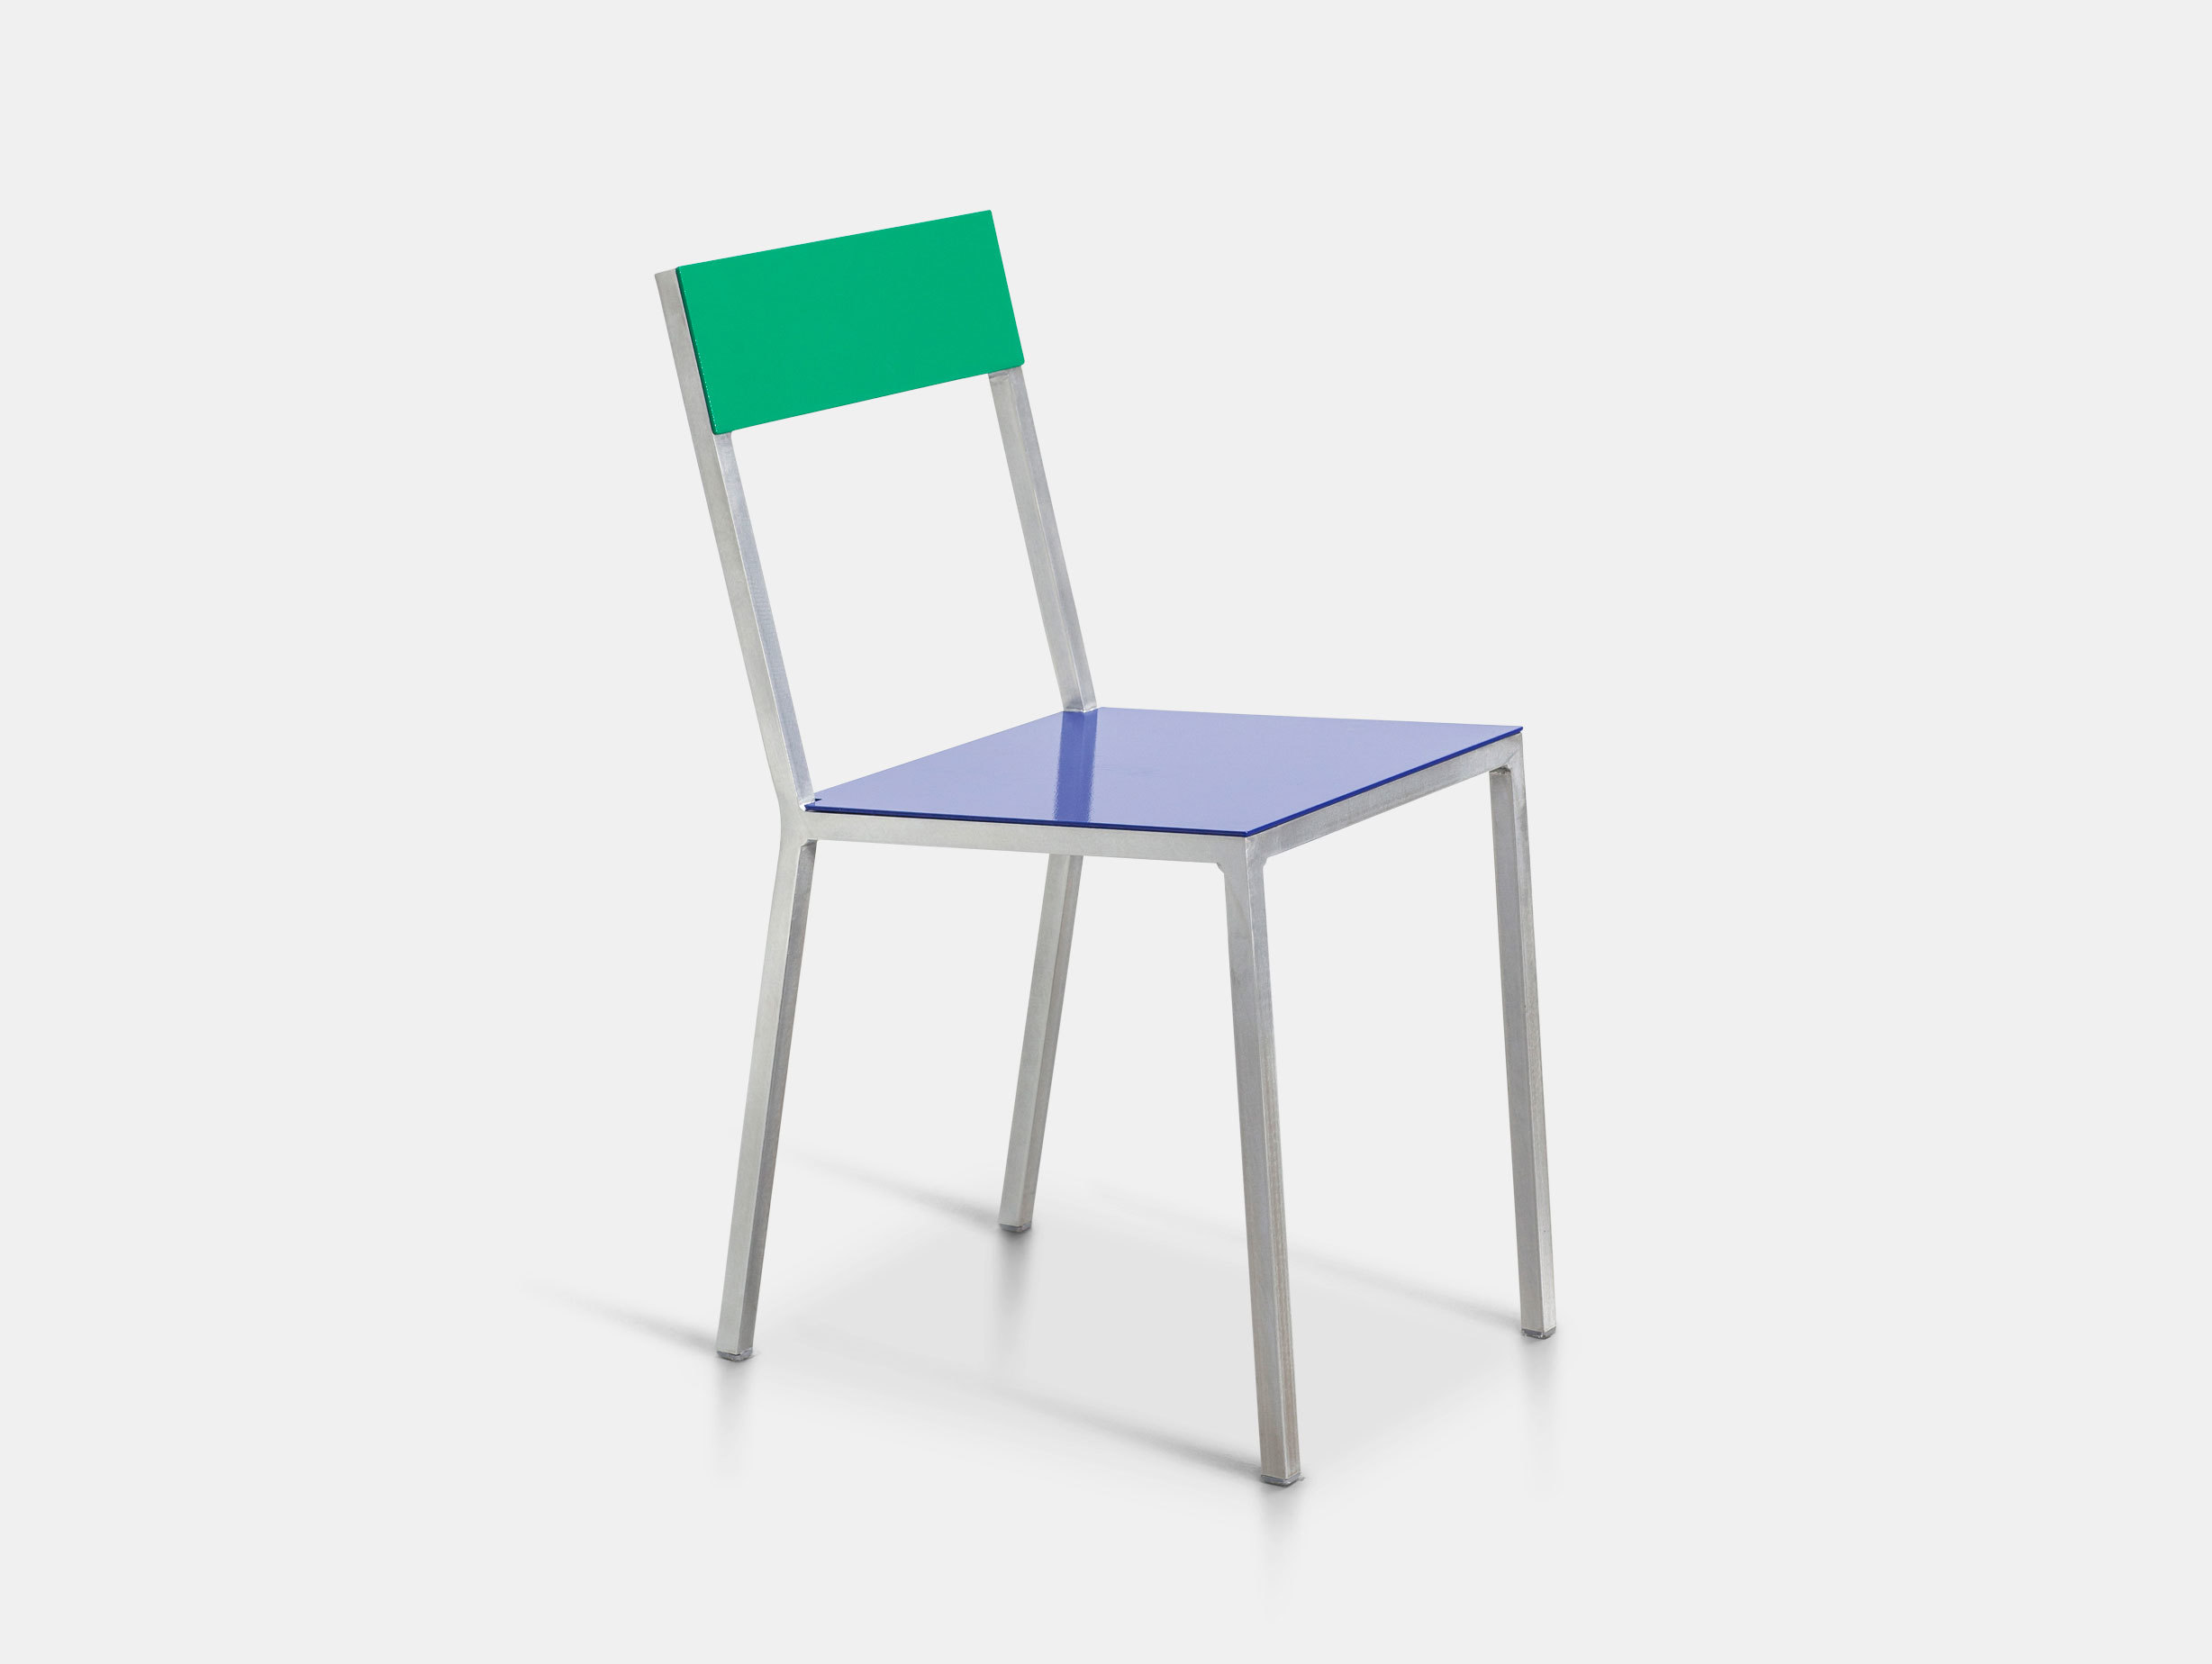 Alu Chair image 7